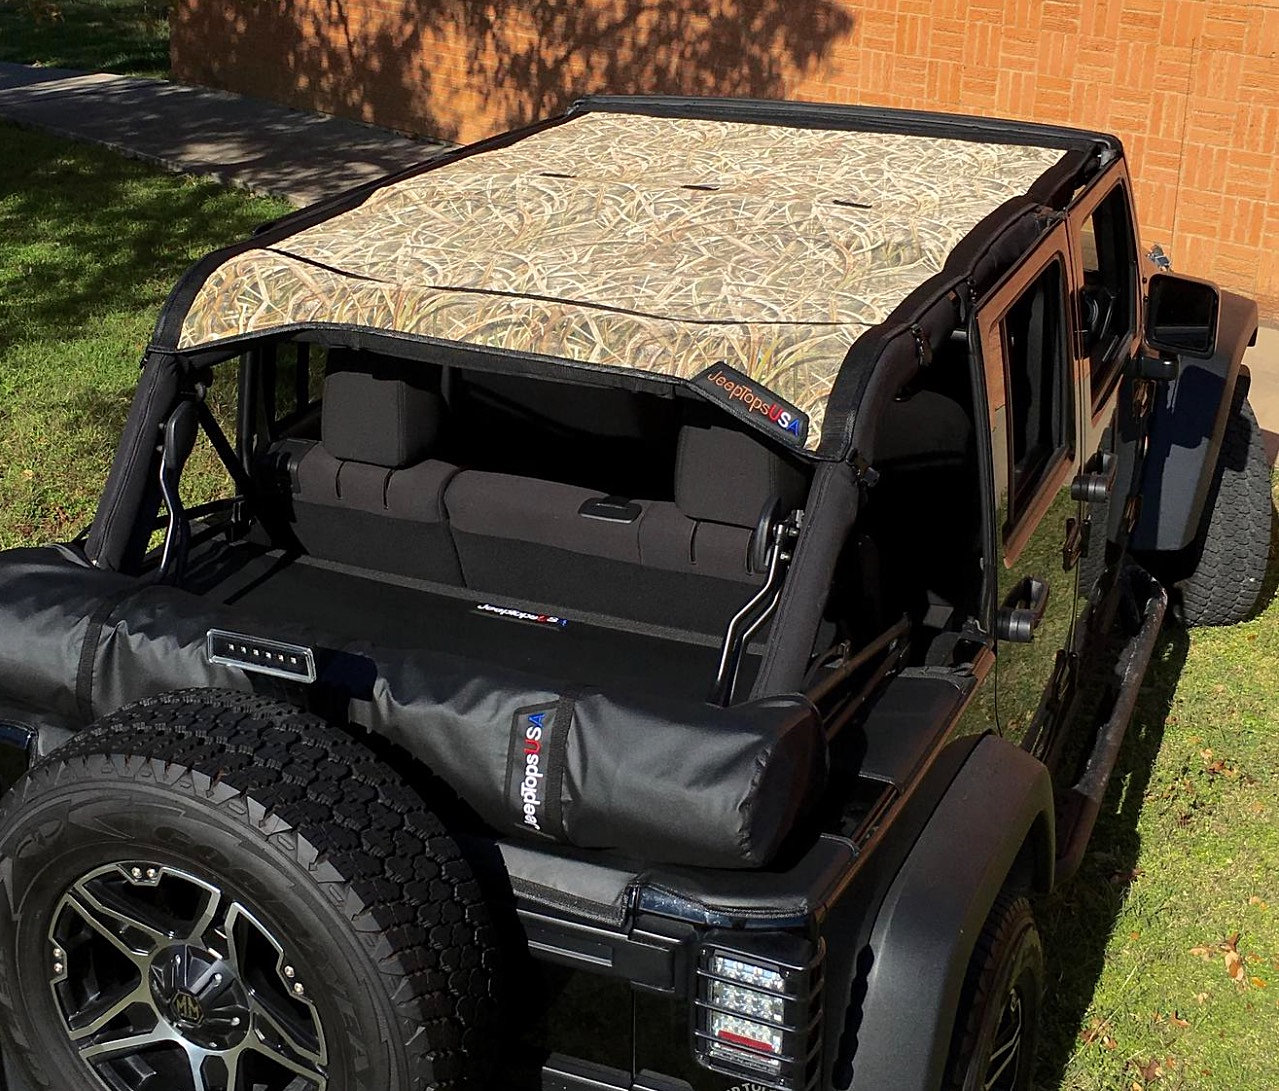 Jeep Wrangler Jku >> Jeep Tops USA, Jeep Shade Tops, Hardtop Headliners & Accessories | Jeep Wrangler JKU 4 Door ...